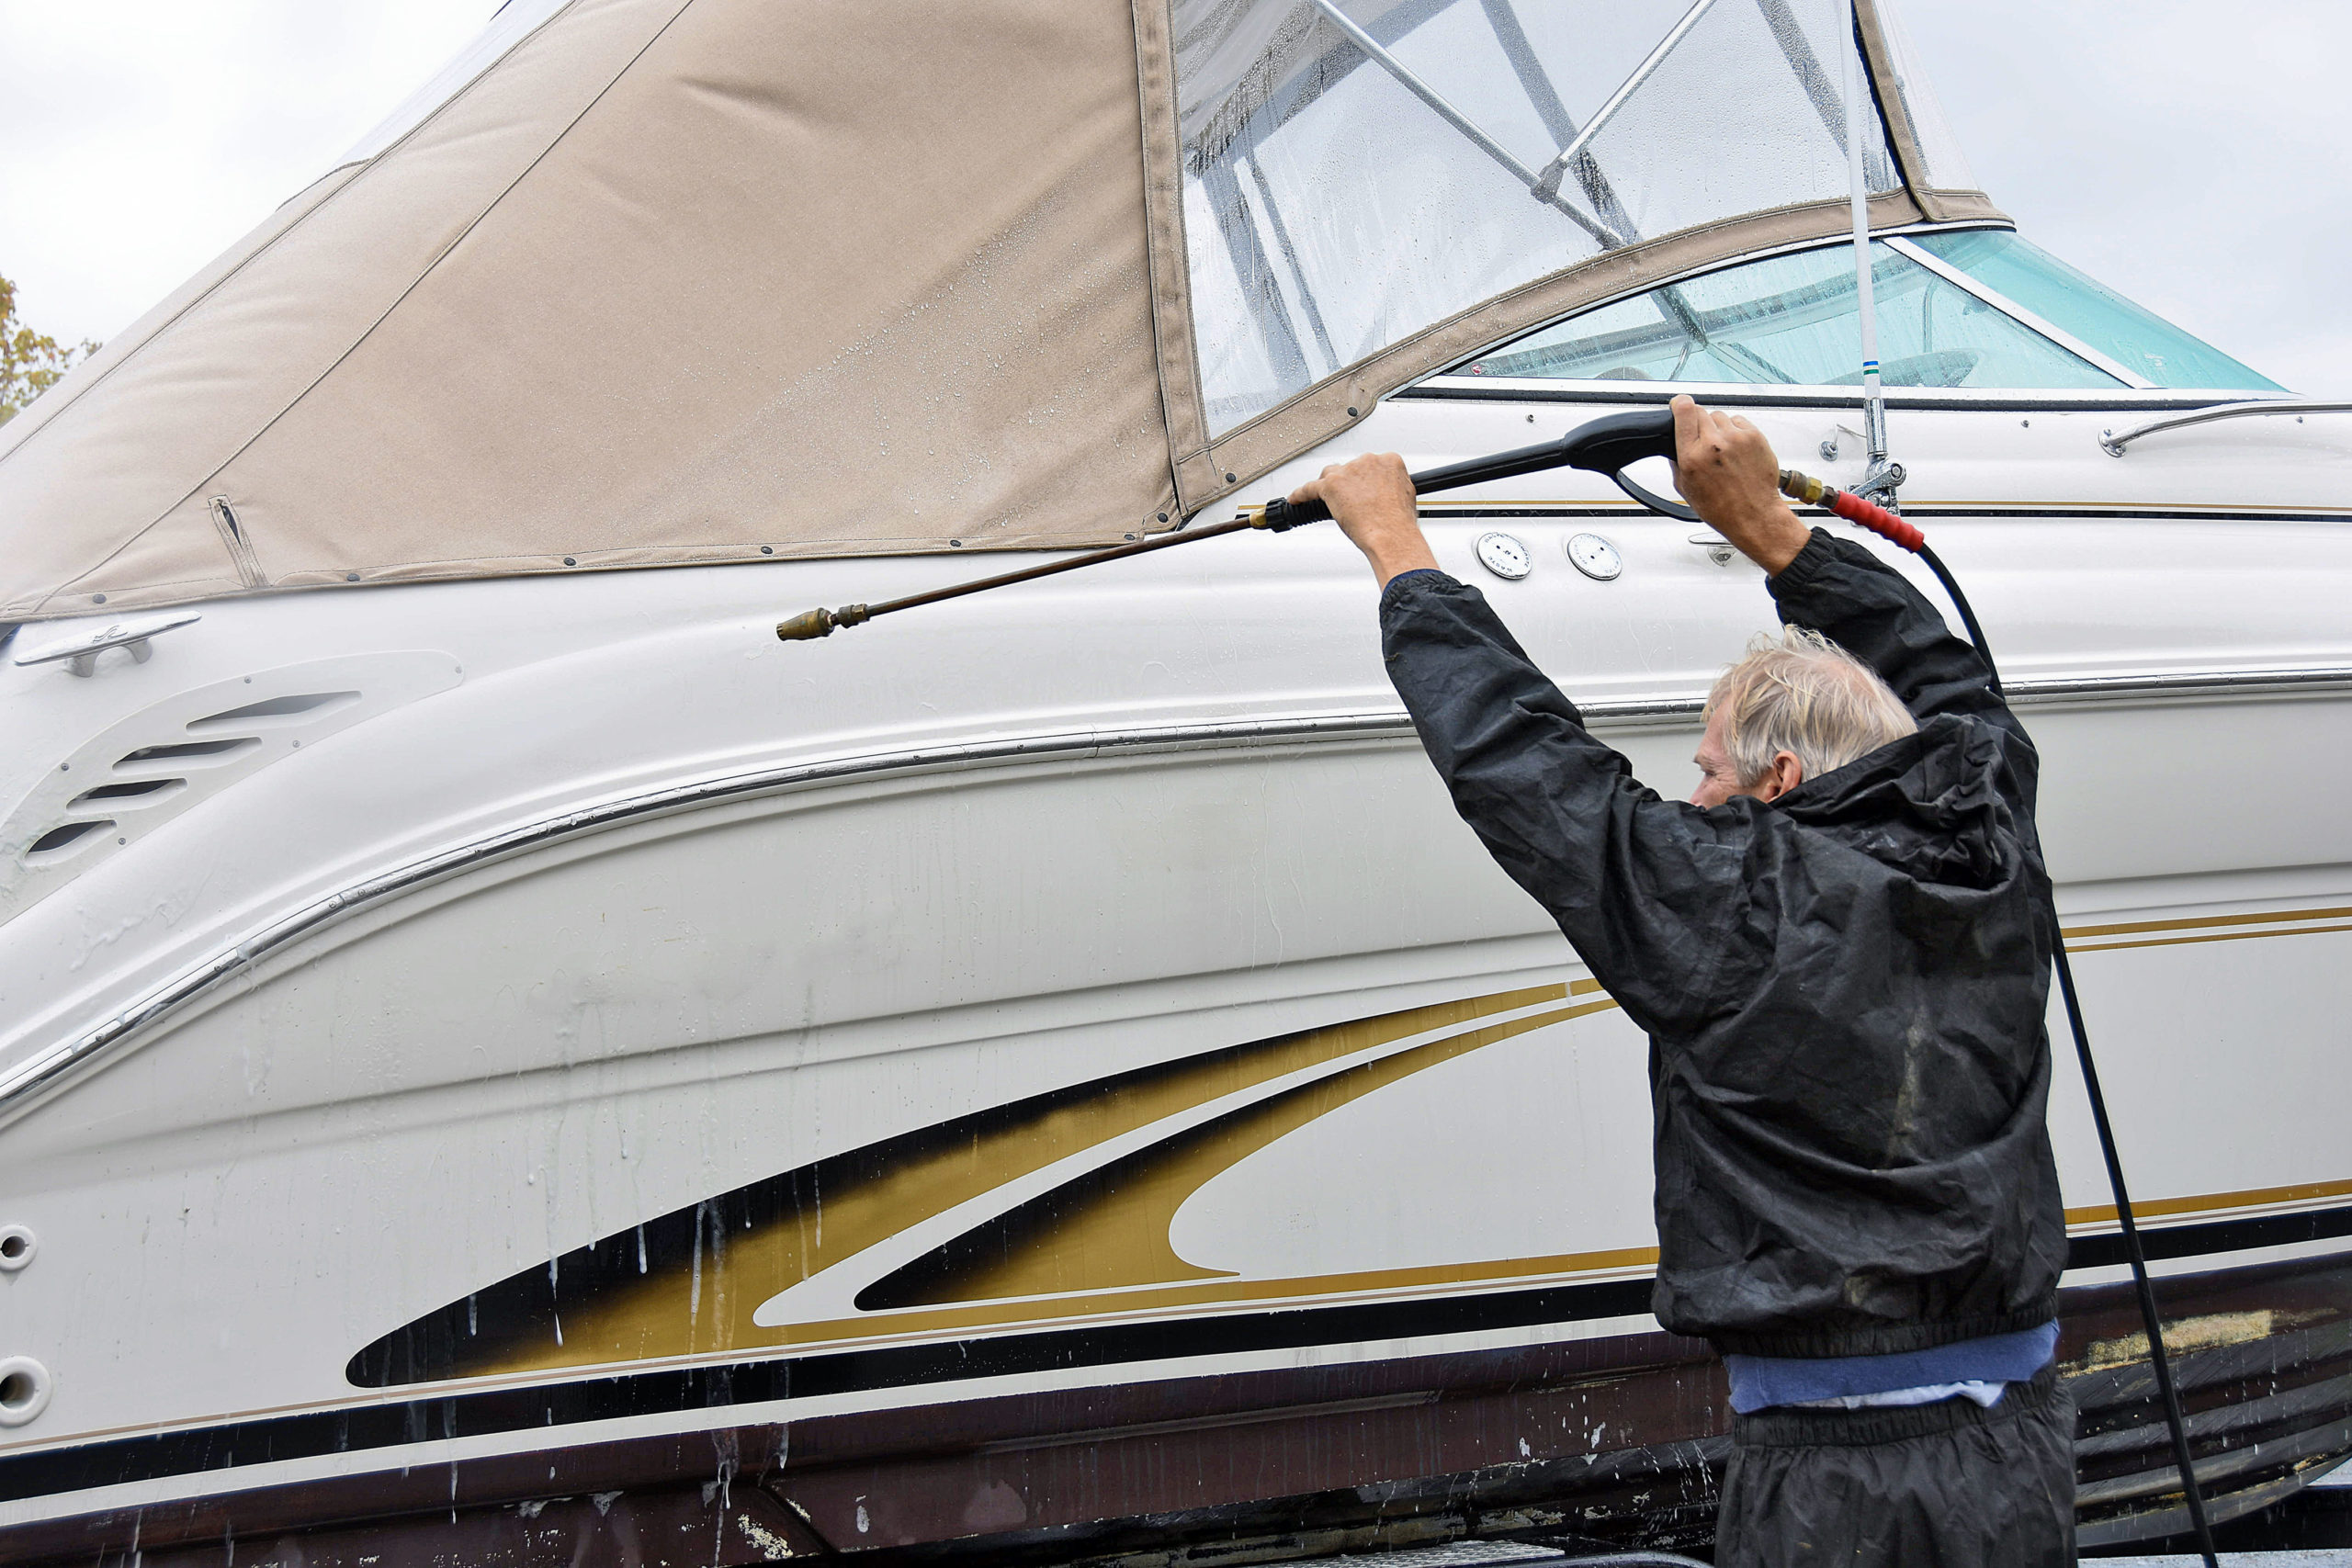 hull cleaner - boat hull cleaner - image 1